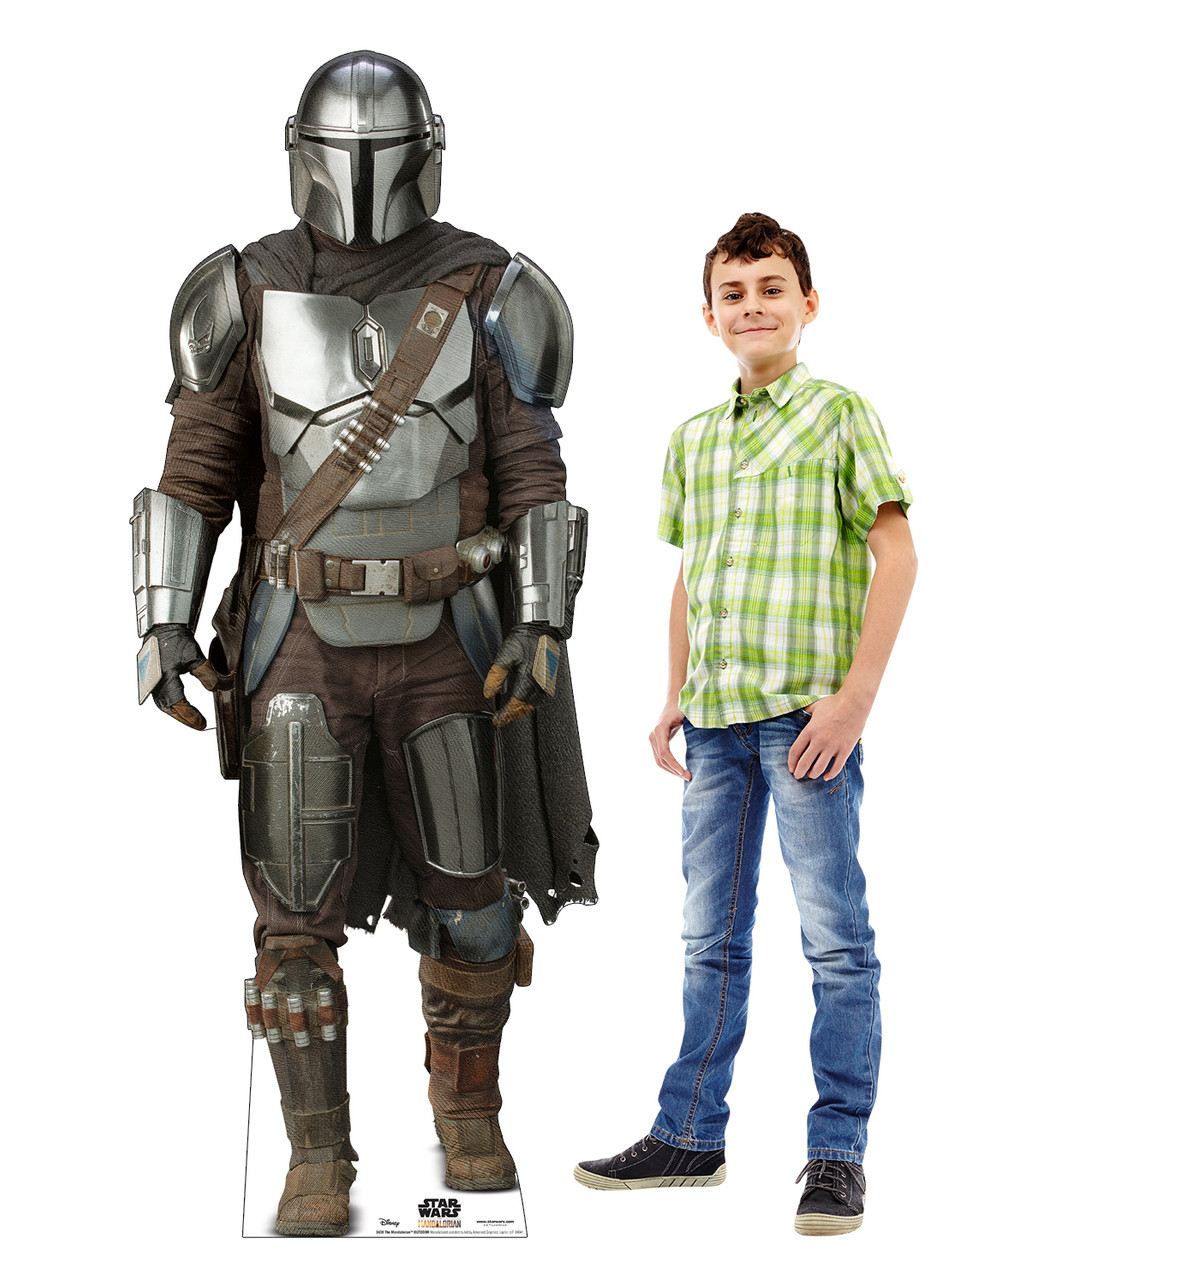 Life-size cardboard standee of The Mandalorian Outdoor with model.